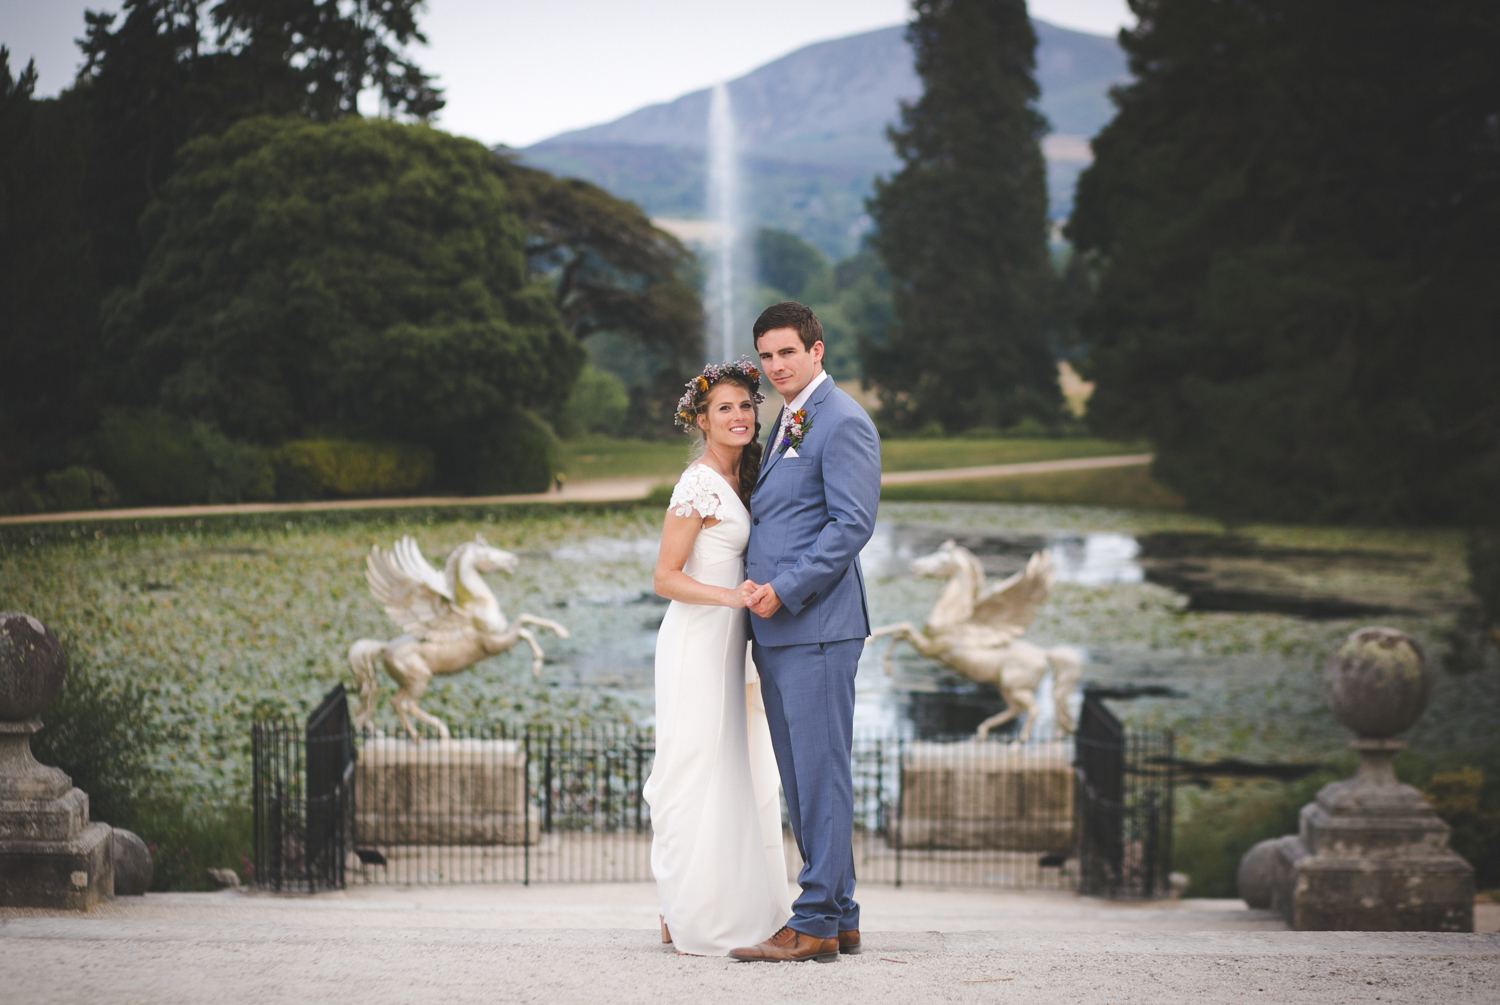 Powerscourt estate wedding-59.jpg